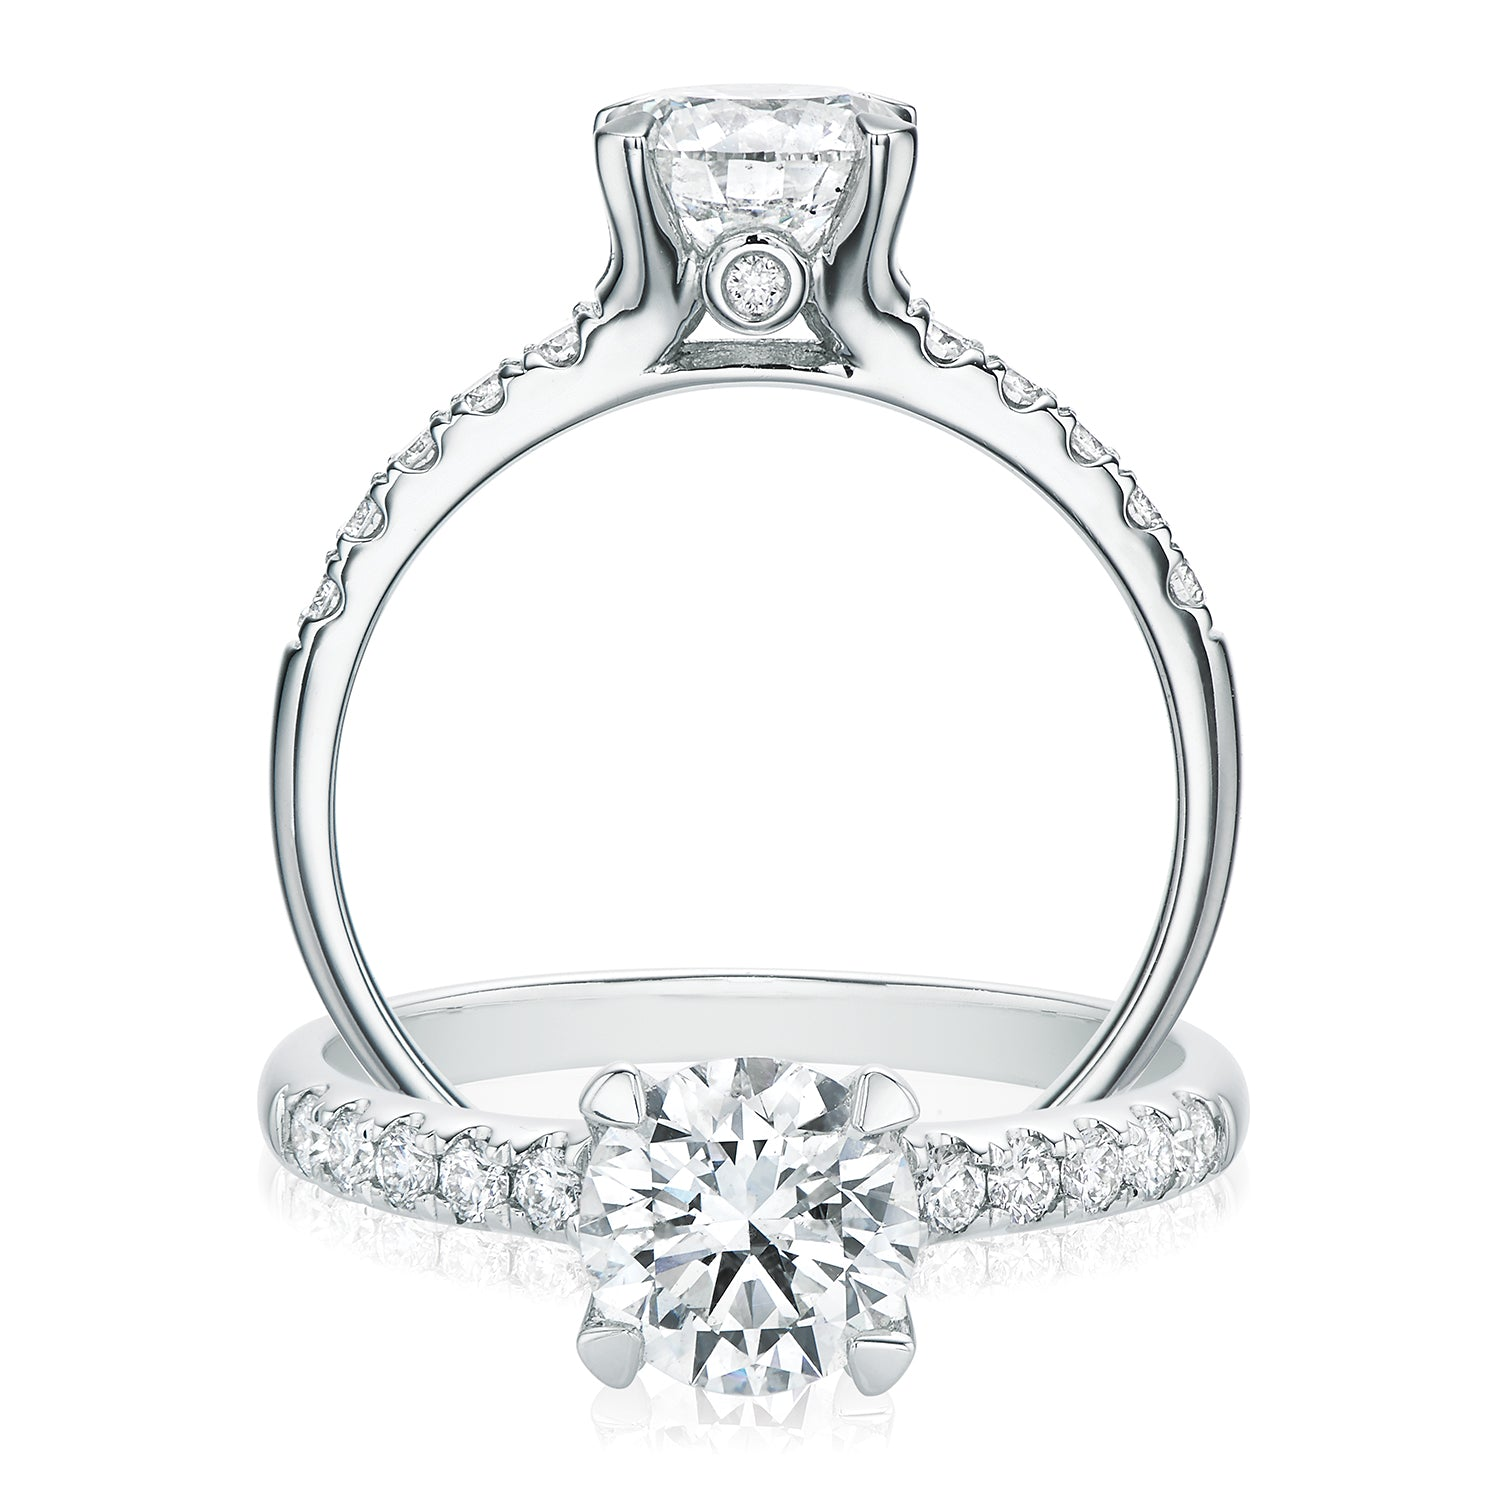 Promise 18ct White Gold Round Brilliant Cut with 1.25 CARAT tw of Diamonds